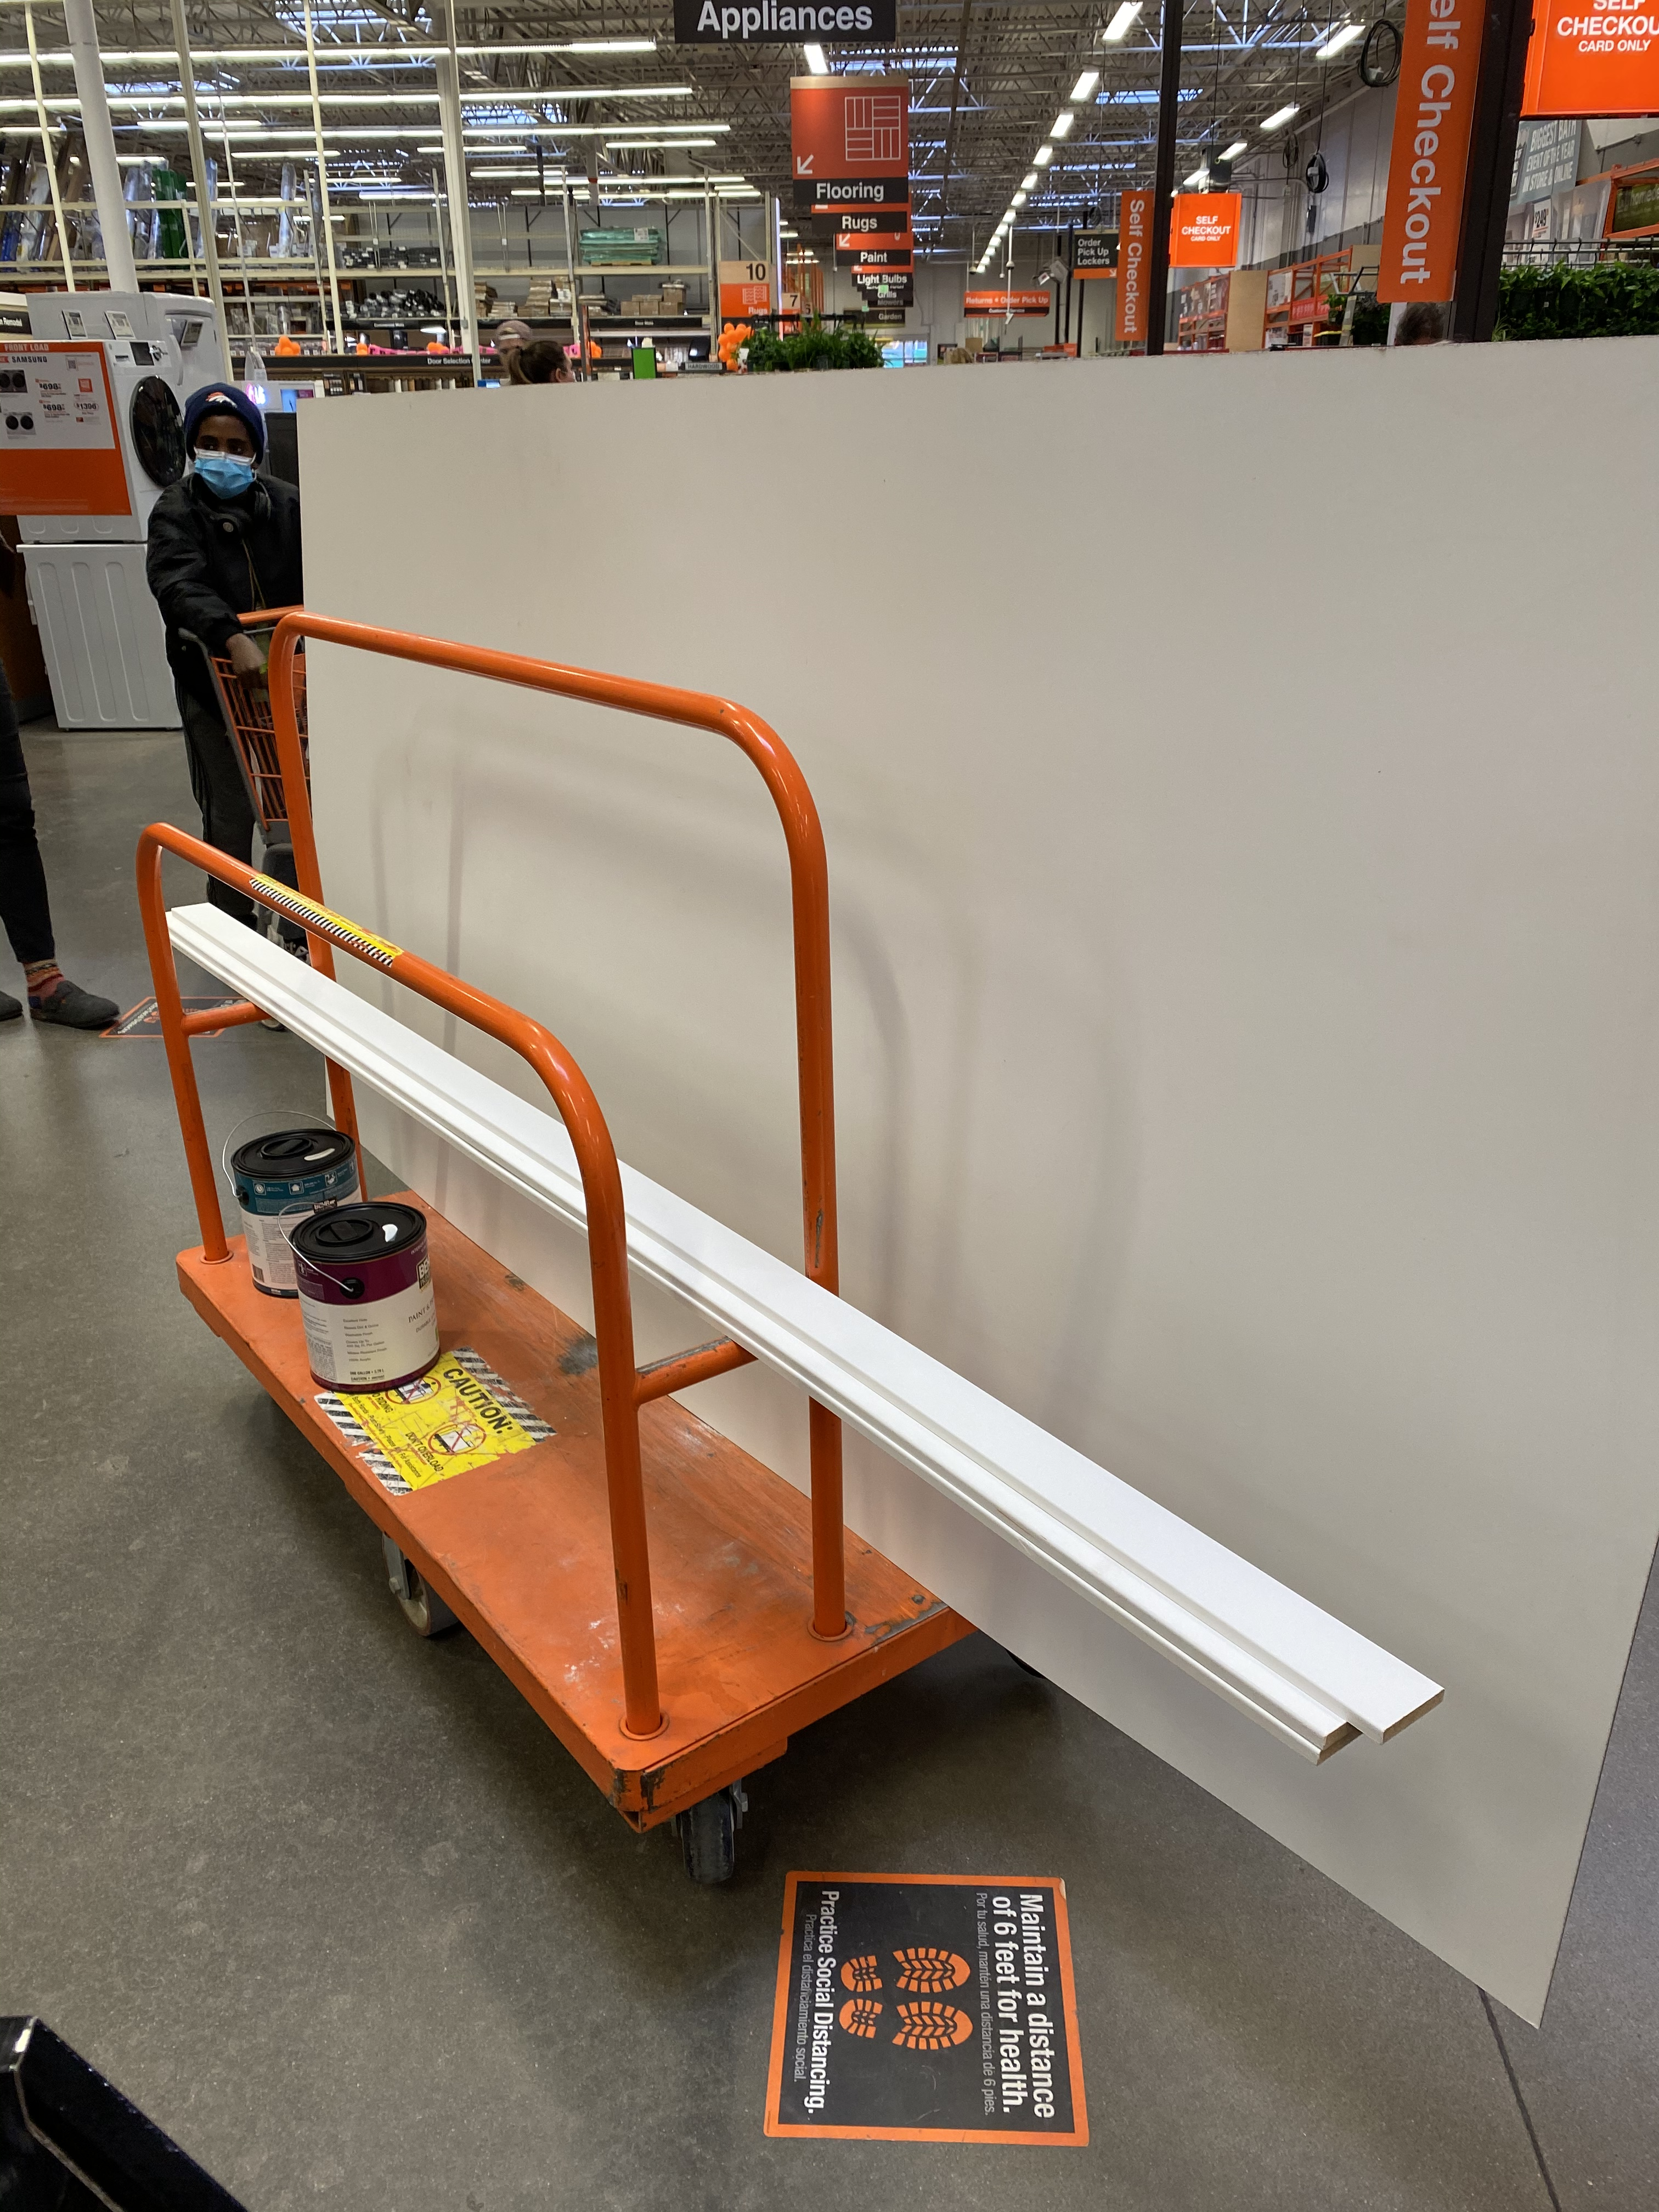 Home Depot purchase